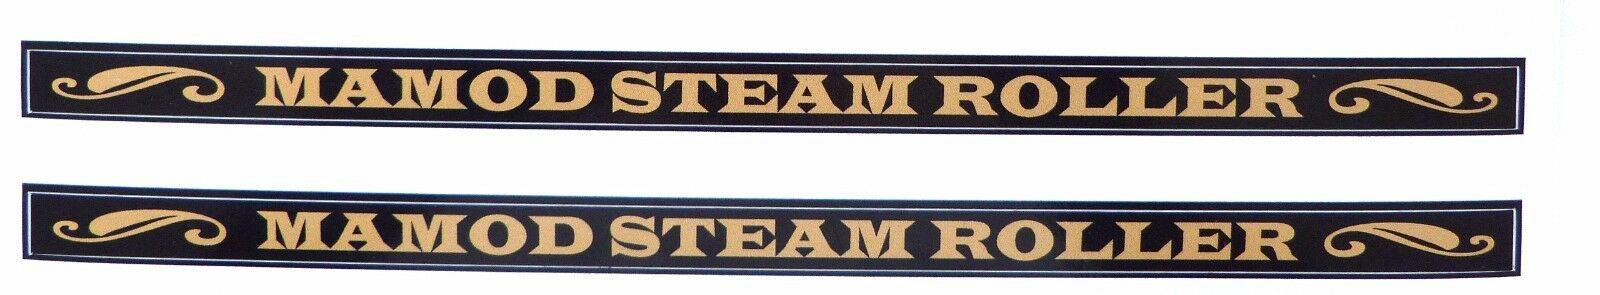 MAMOD CANOPY DECALS / STICKERS SR1A STEAM ROLLER